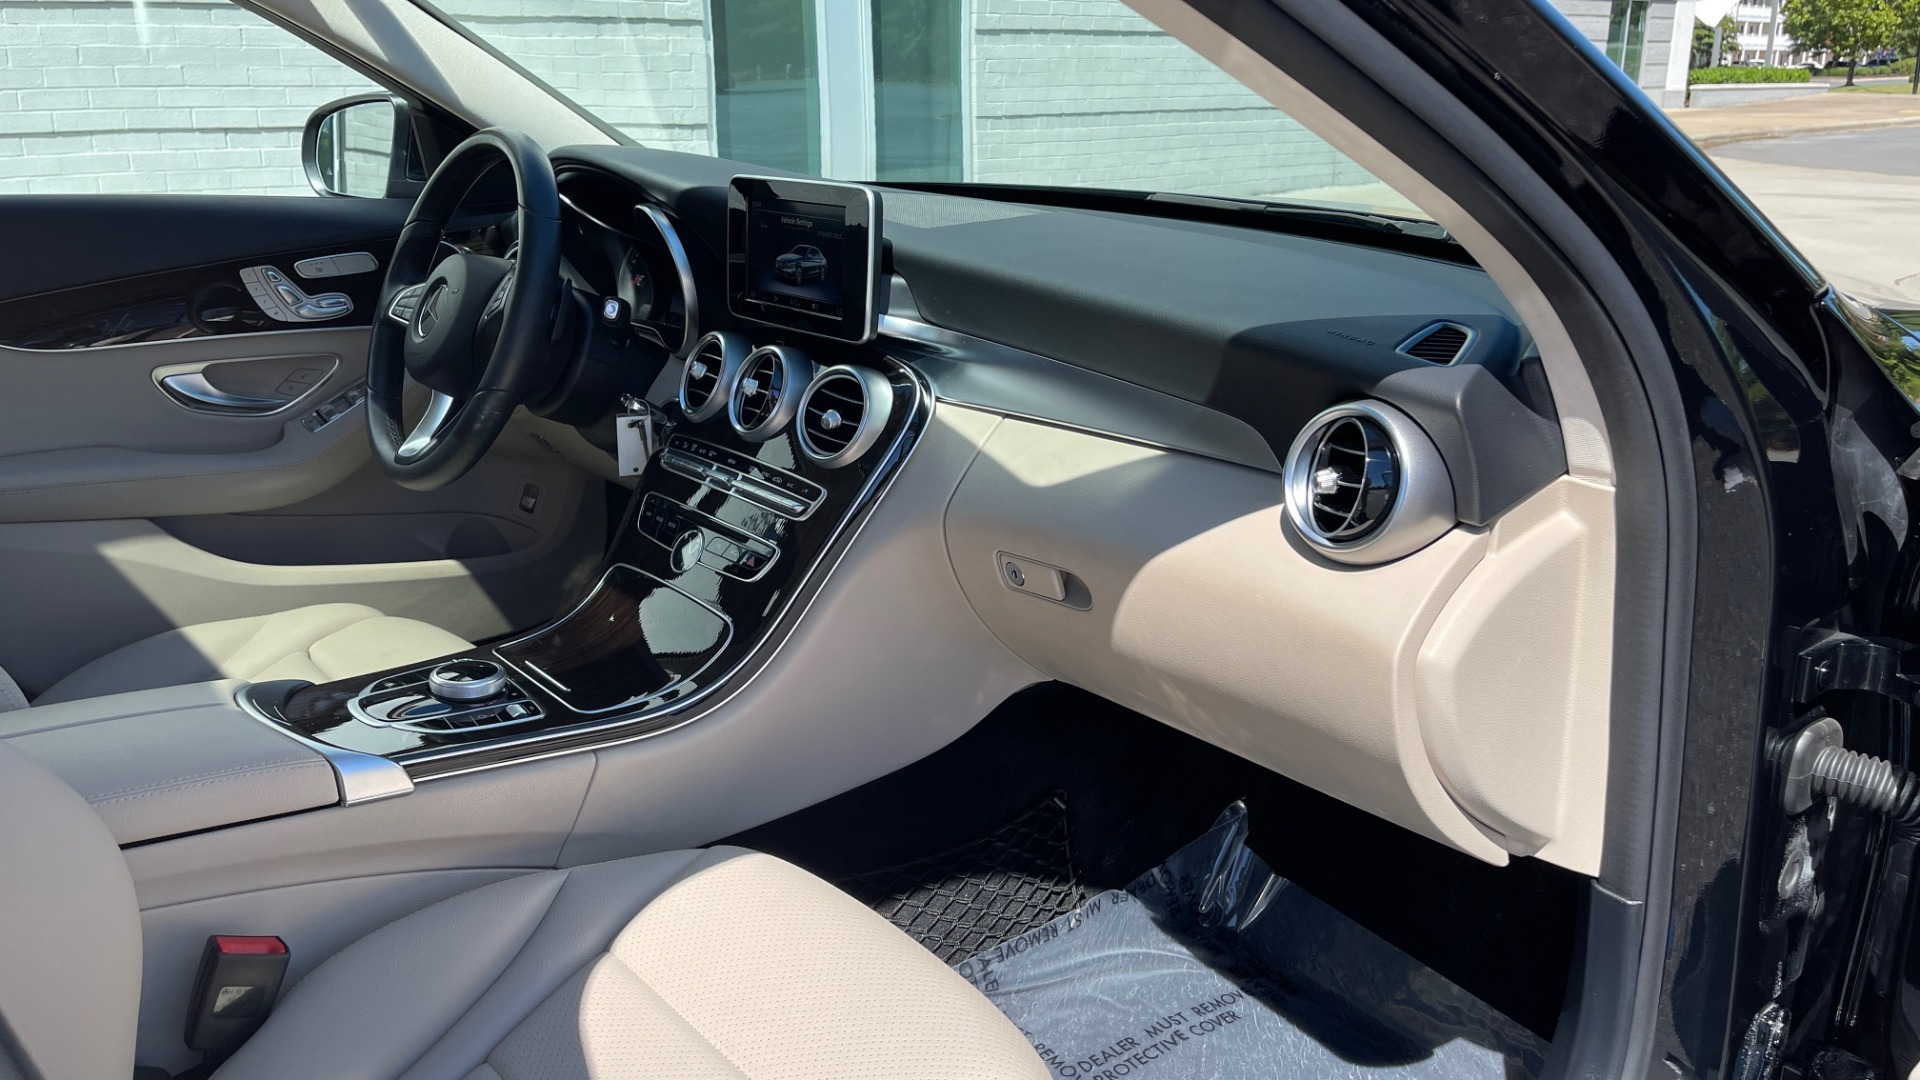 Used 2018 Mercedes-Benz C-CLASS C 300 PREMIUM / APPLE CARPLAY / SUNROOF / REARVIEW for sale $31,995 at Formula Imports in Charlotte NC 28227 56